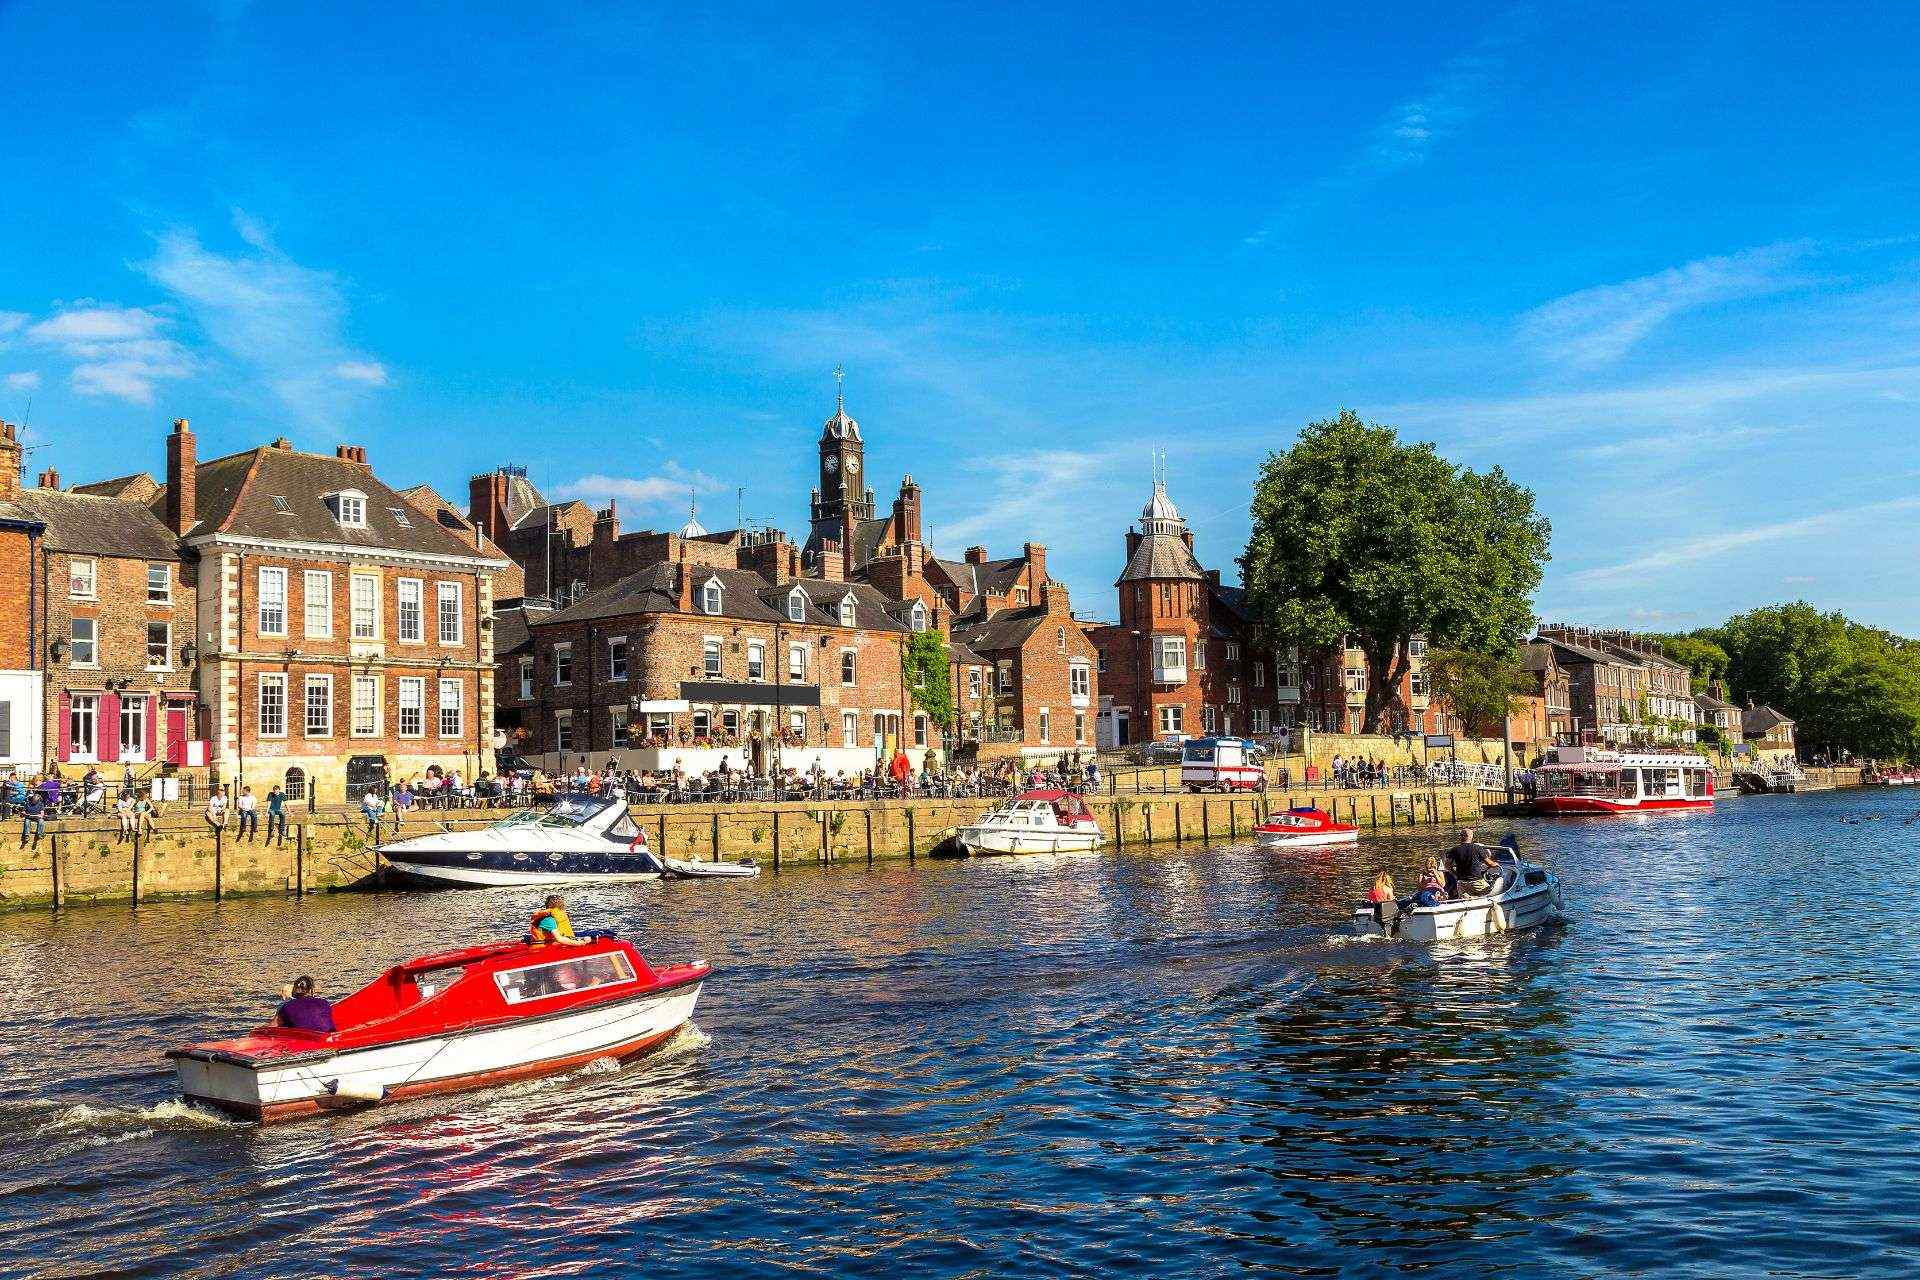 york-city-cruises-boats-going-along-the-river-ouse